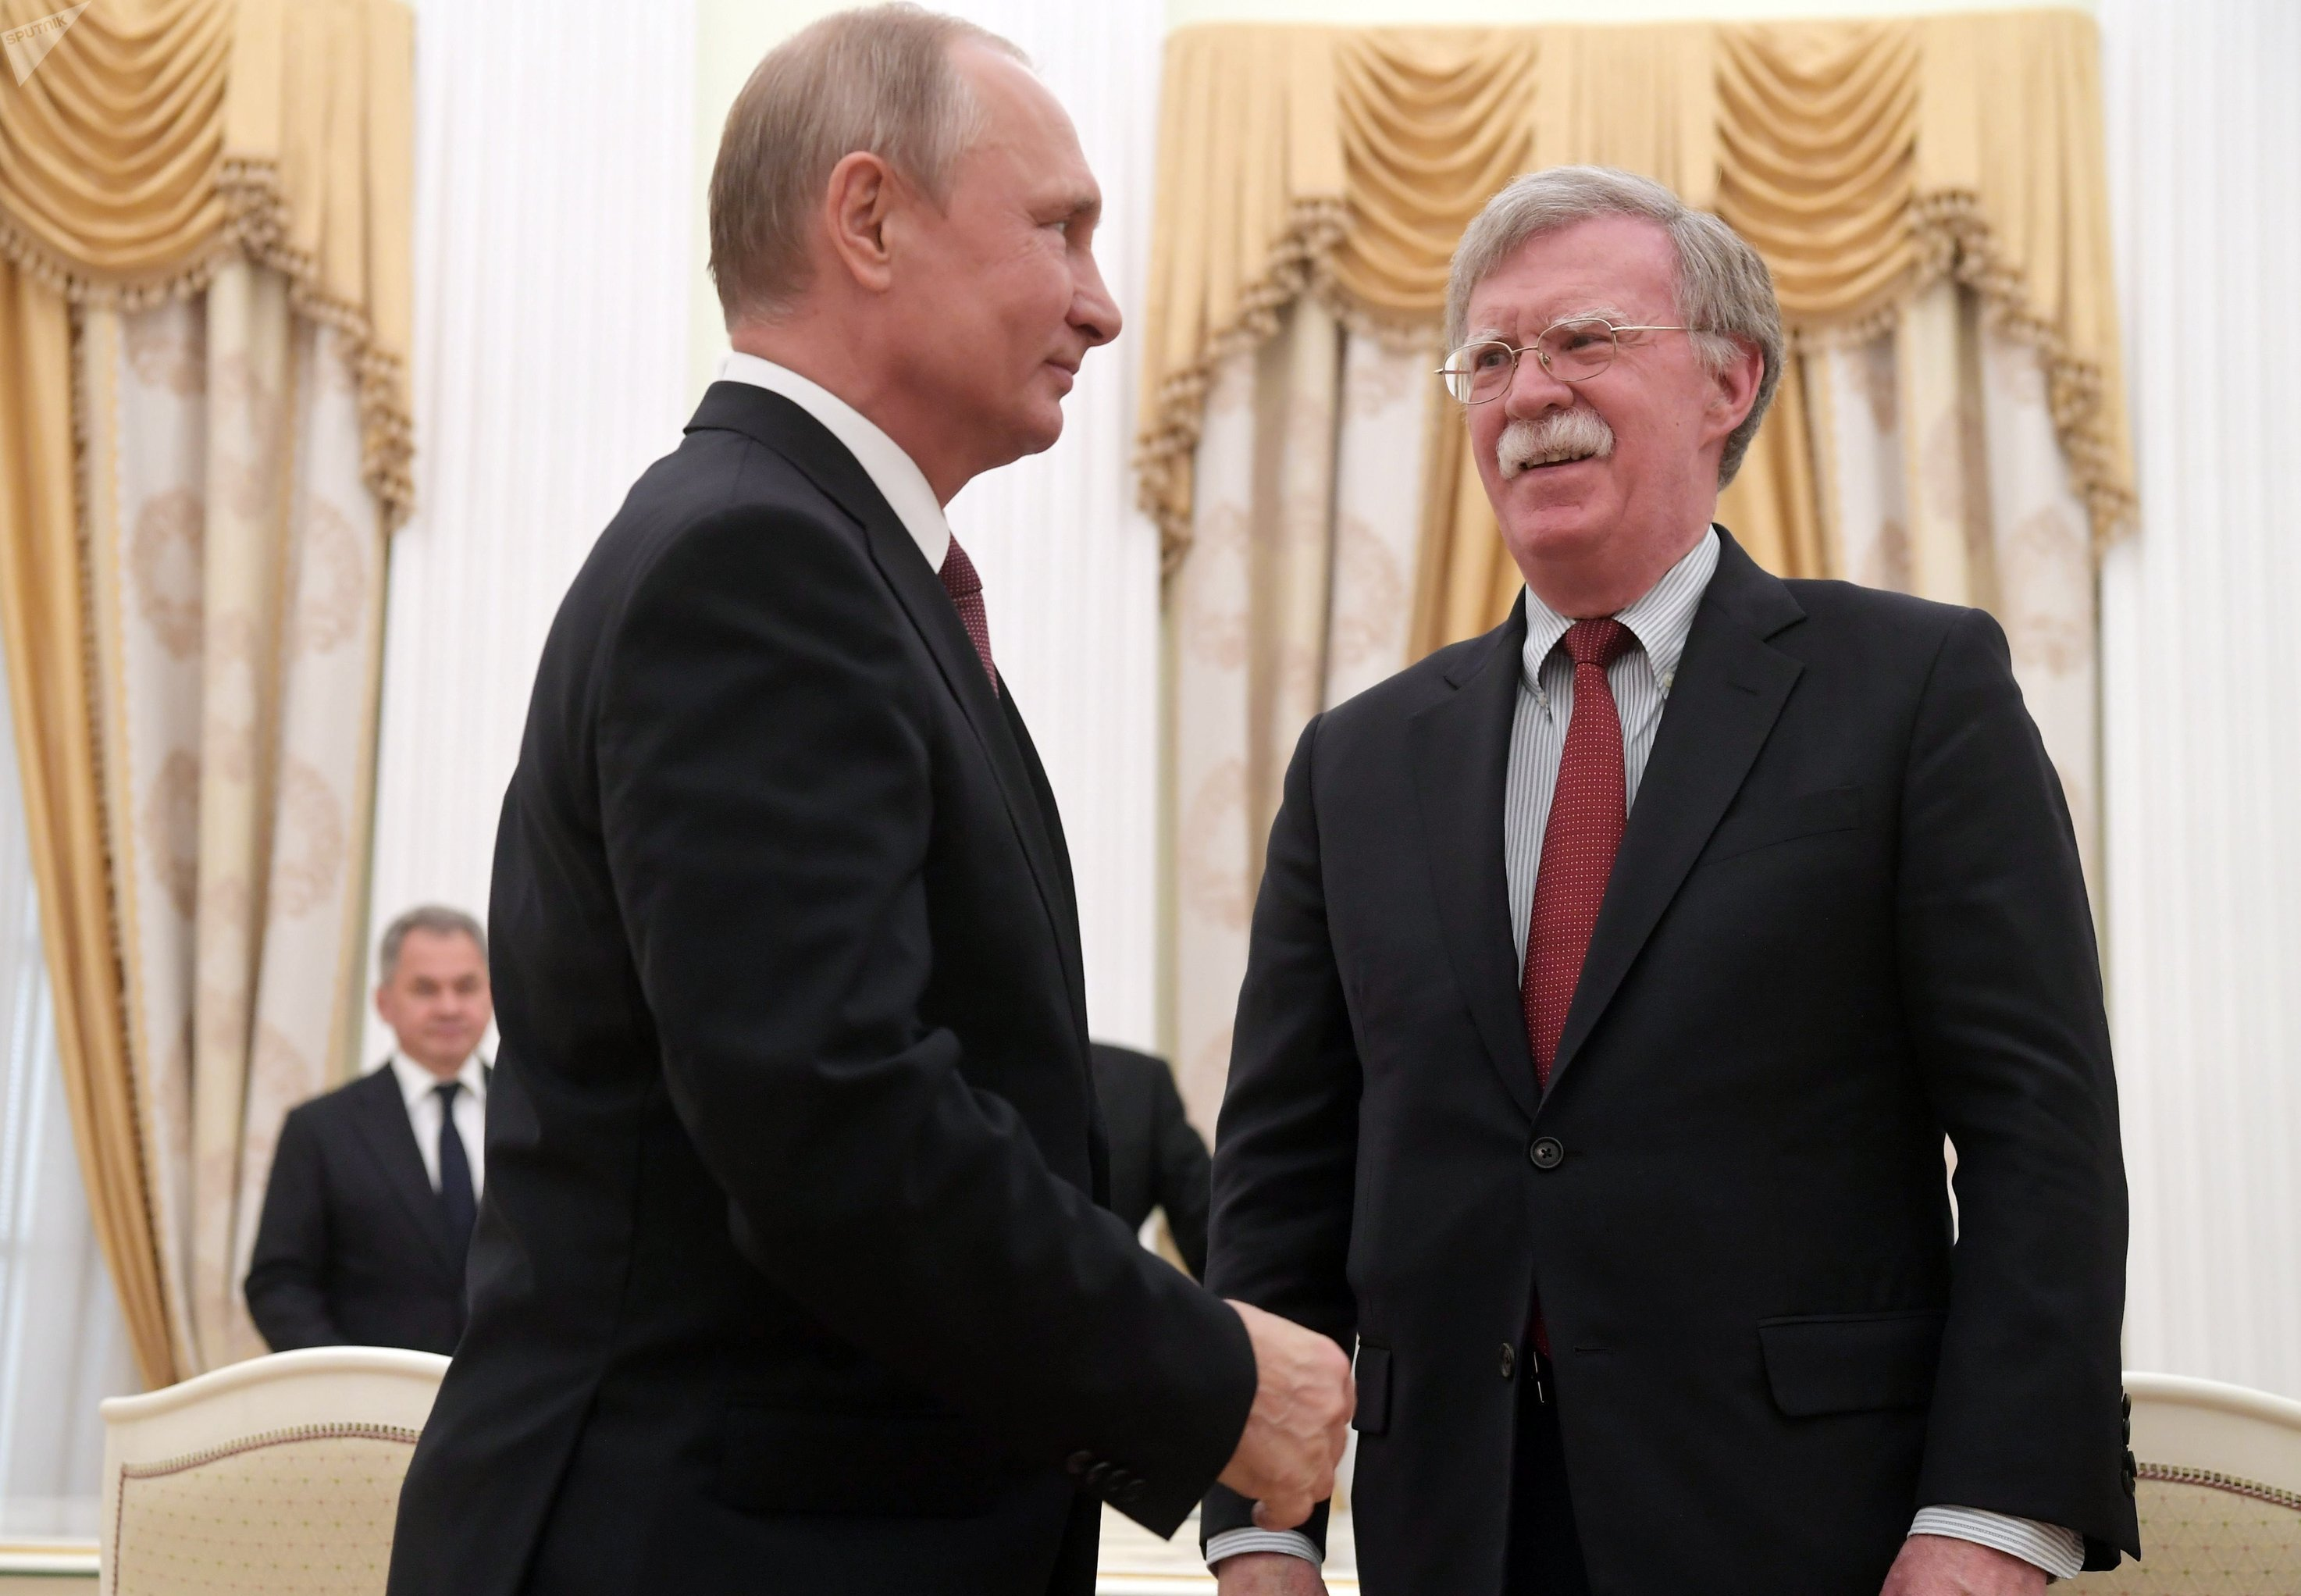 June 27, 2018. Russian President Vladimir Putin and Assistant to the US President for National Security Affairs John Bolton, right, during a meeting in the Kremlin